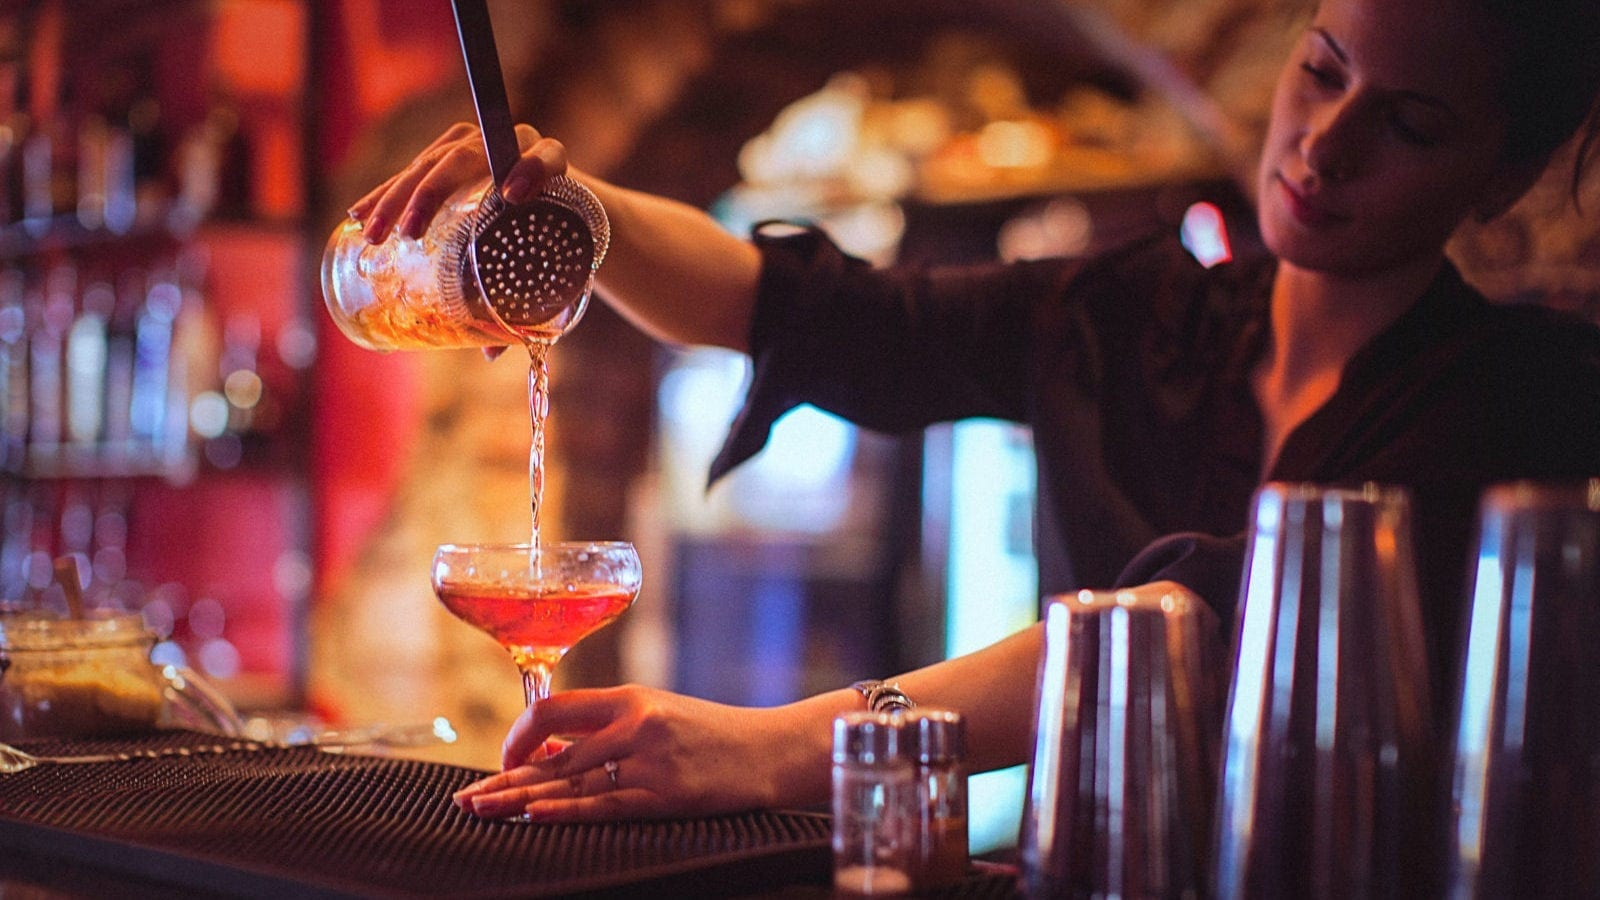 Bartender Pouring A Cocktail Stock Photo